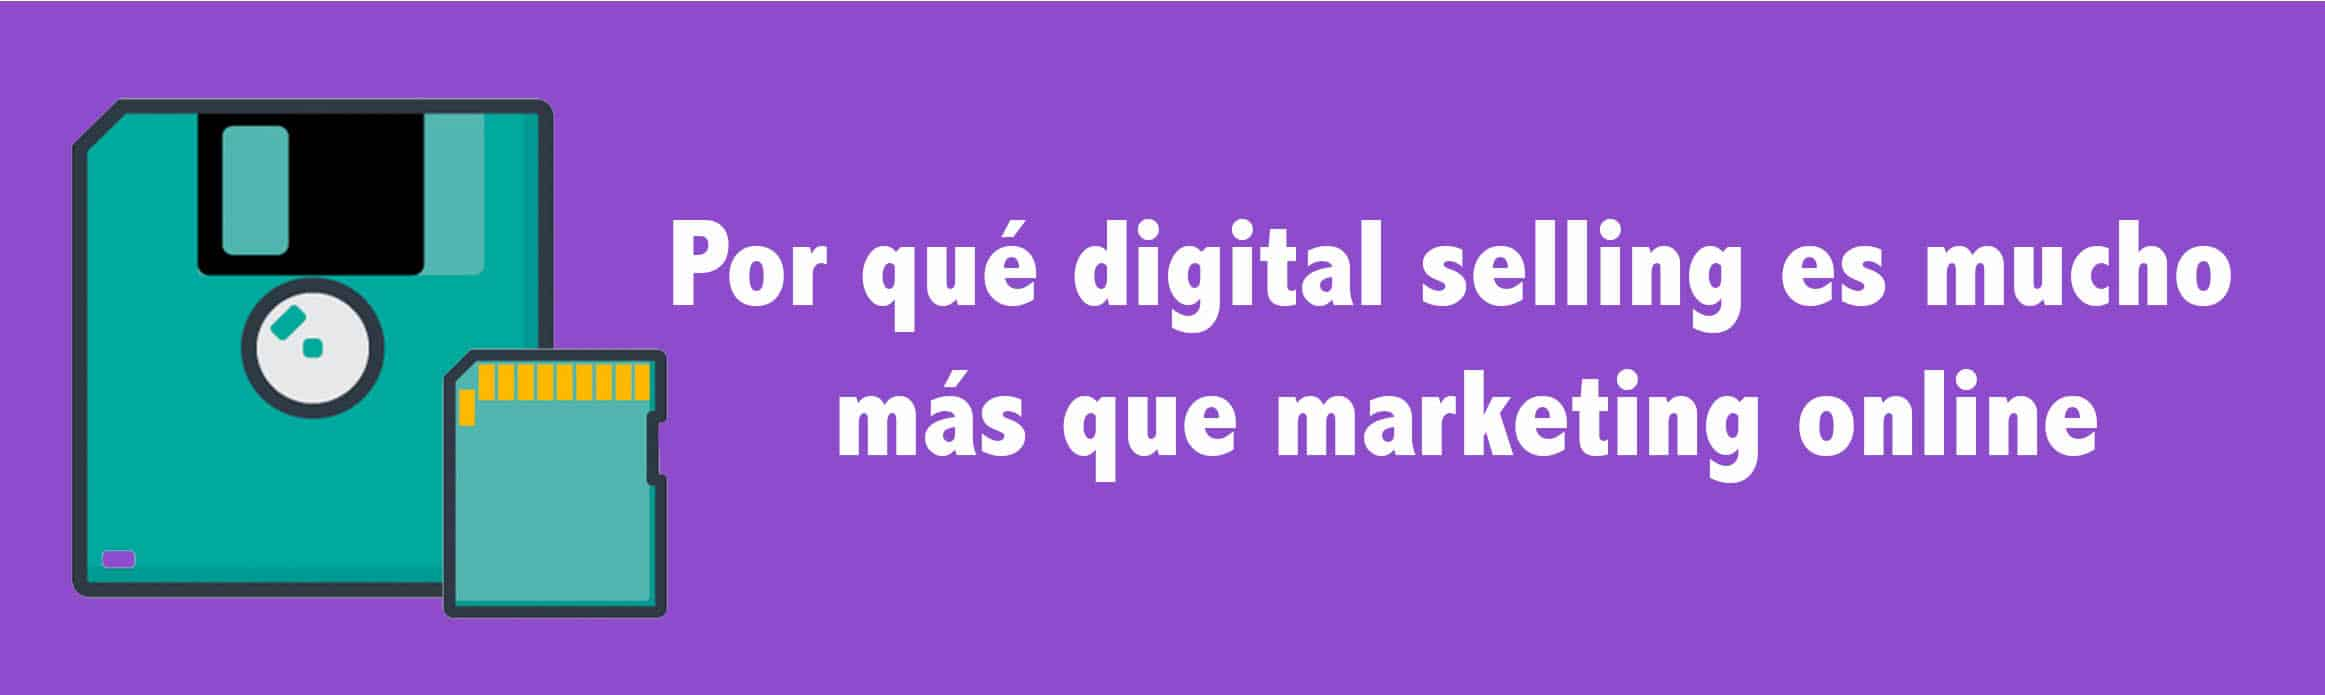 digital selling, marketing